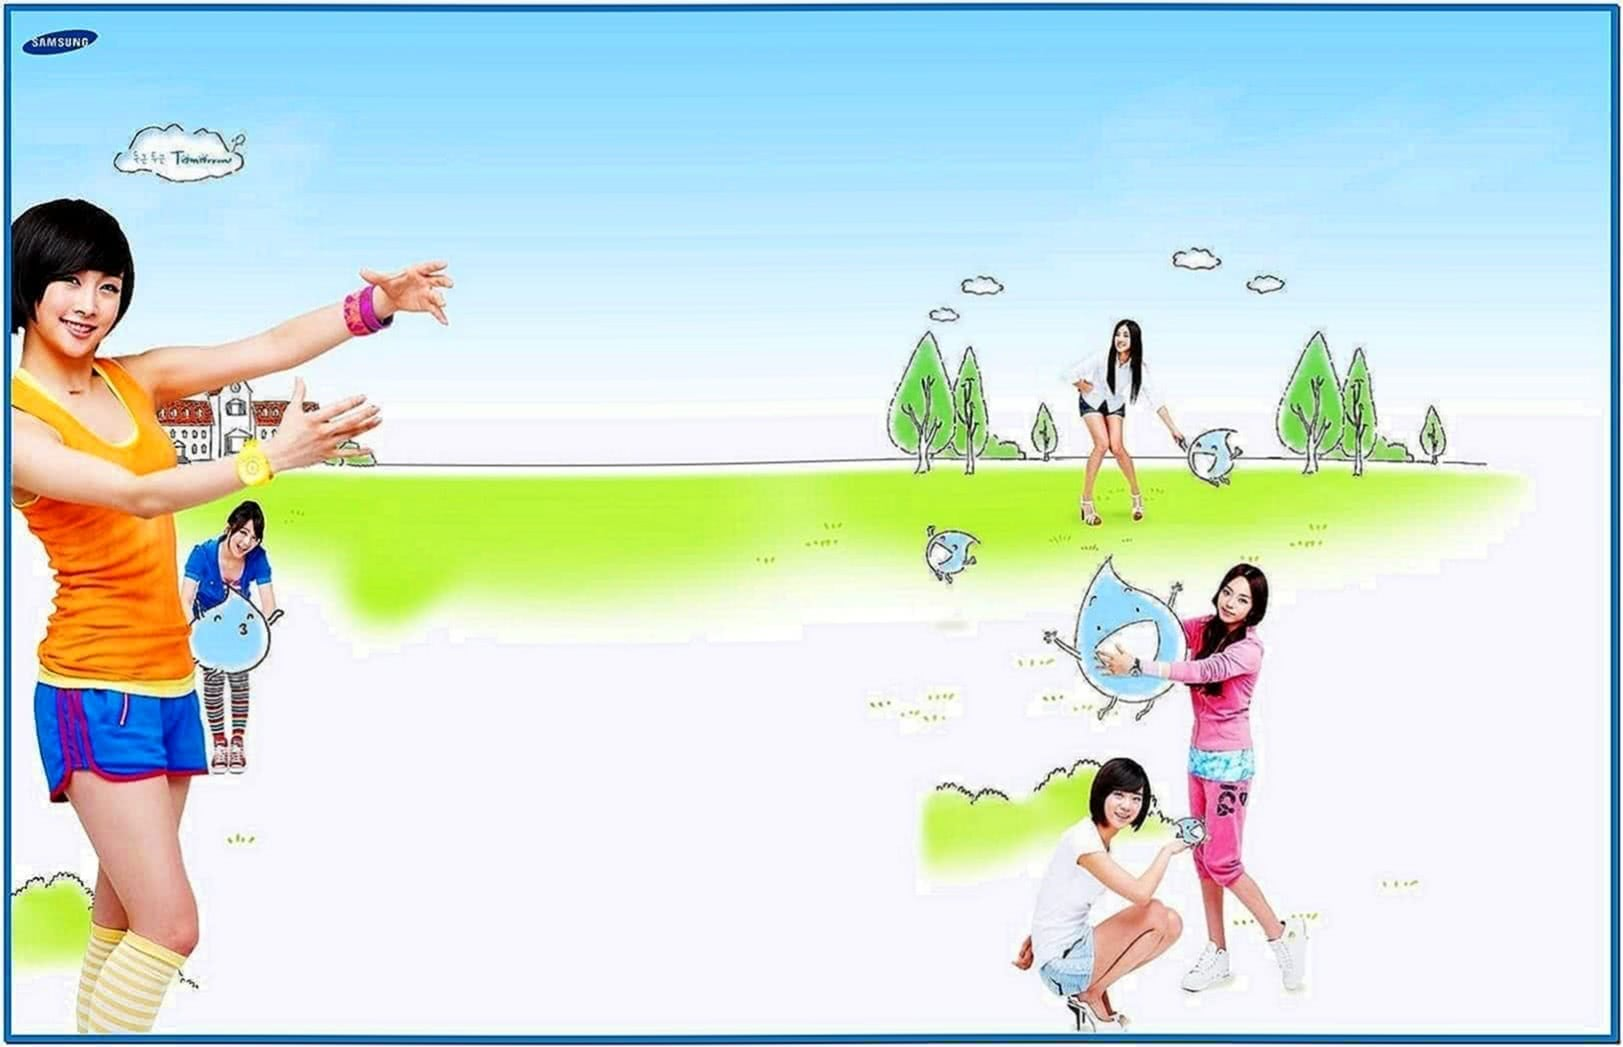 Kara Samsung Campaign Bubble Screensaver